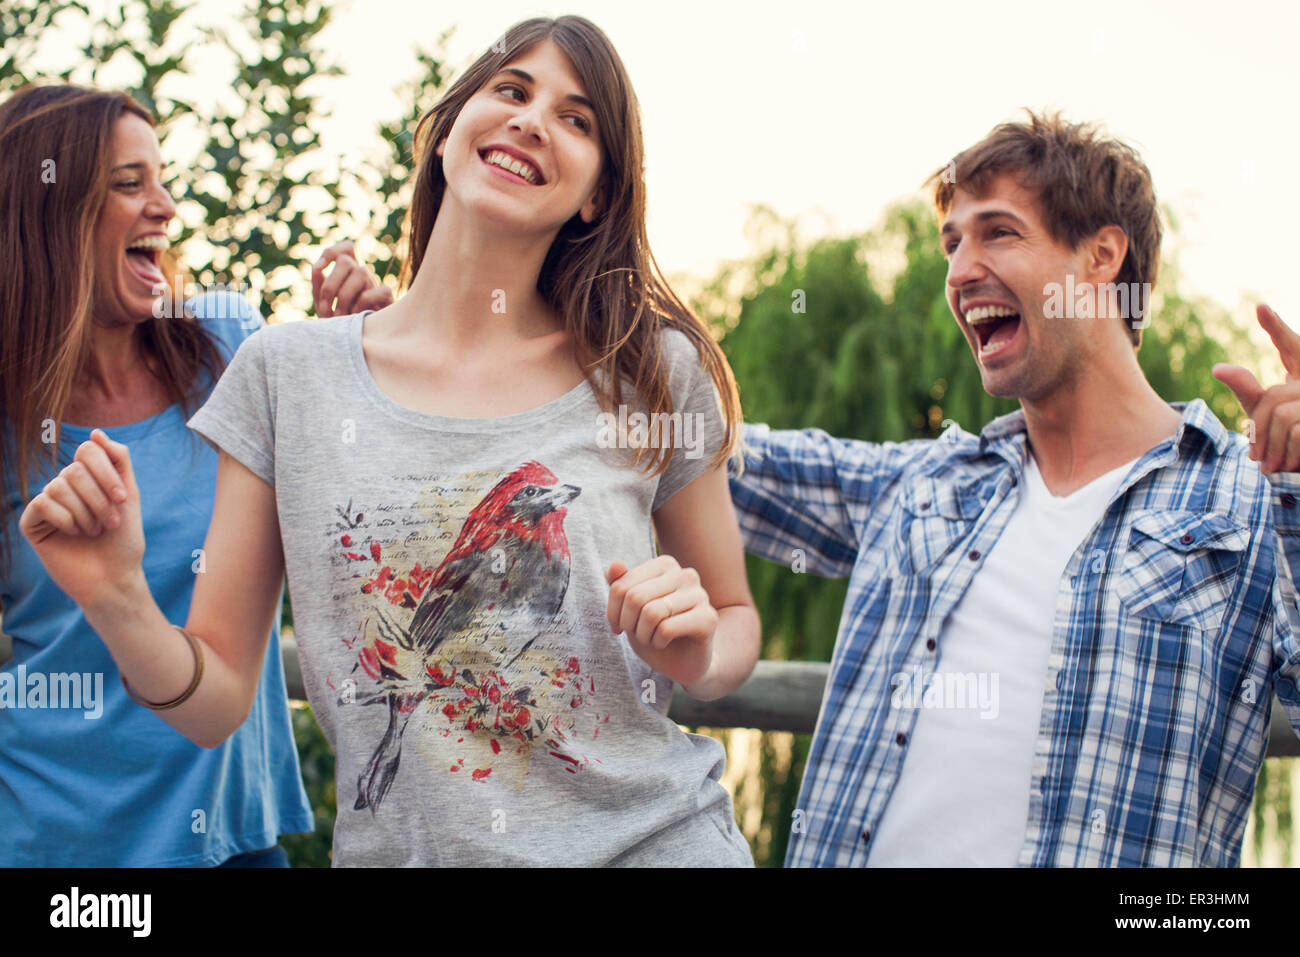 College friends at outdoors party - Stock Image